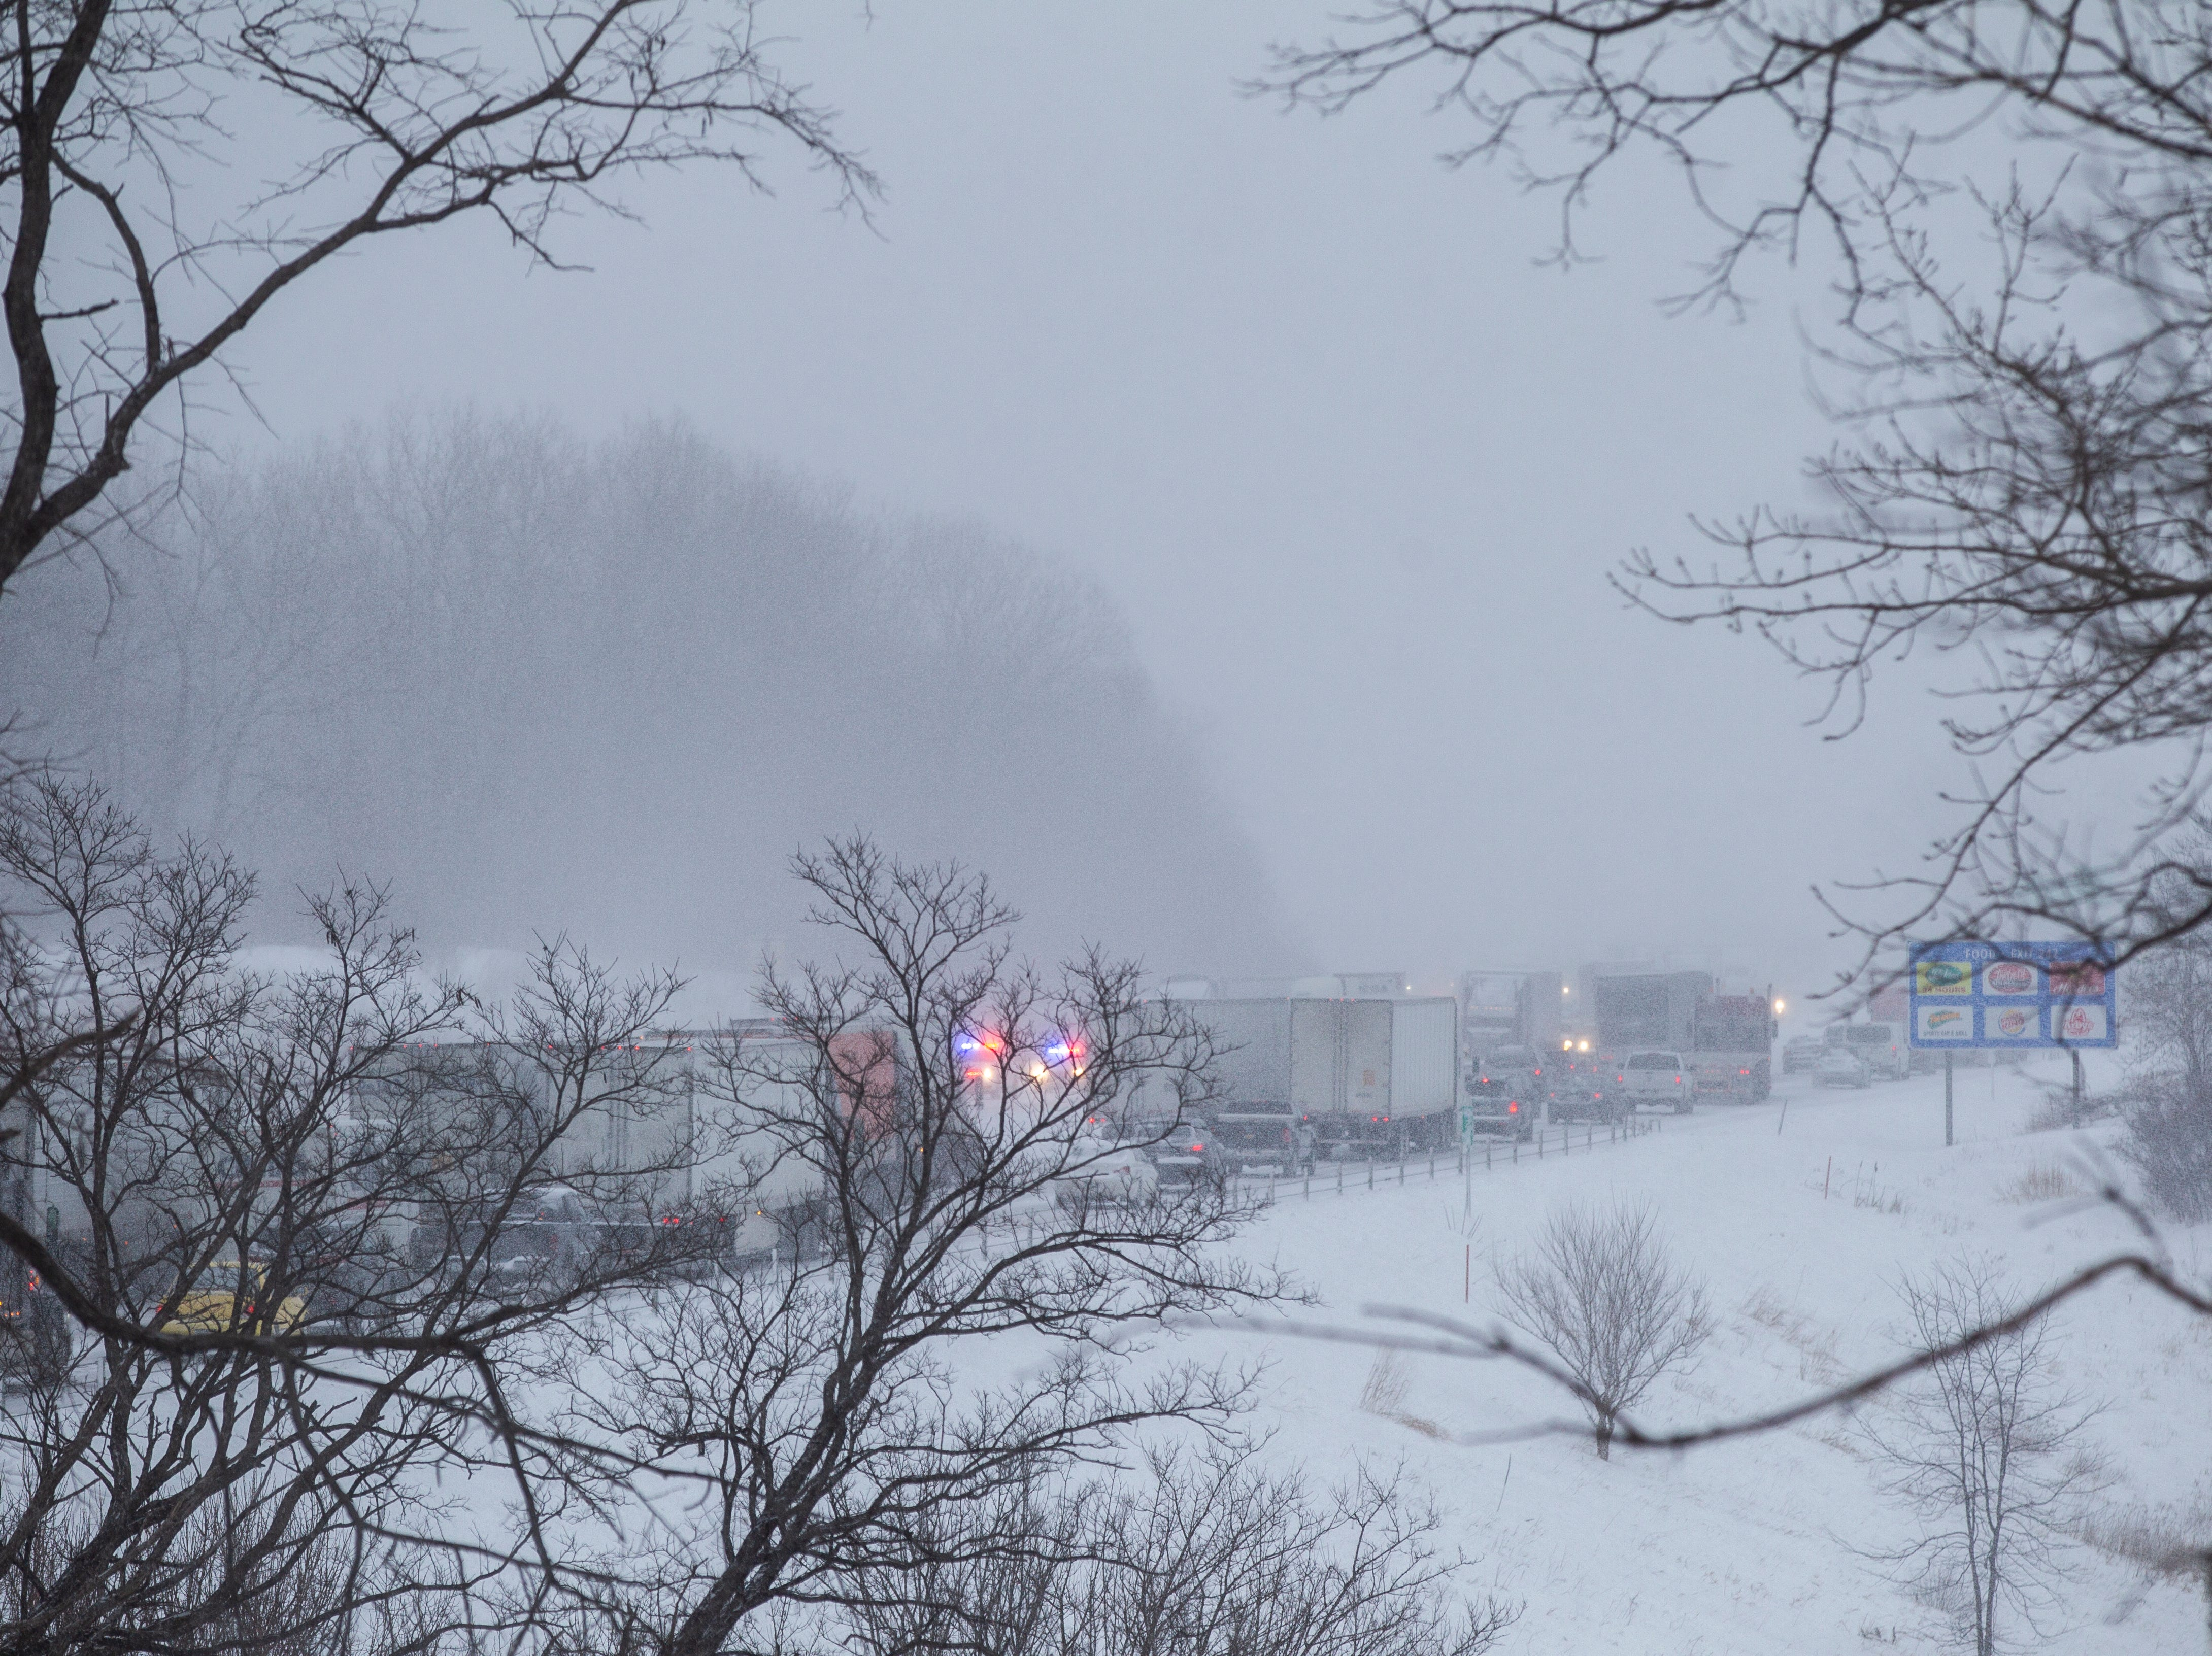 Traffic gets backed up in eastbound lanes as snow falls on Thursday, Jan. 31, 2019, along Interstate 80 between exits 242 at 1st Avenue and exit 240 for IA 965 in Coralville, Iowa.